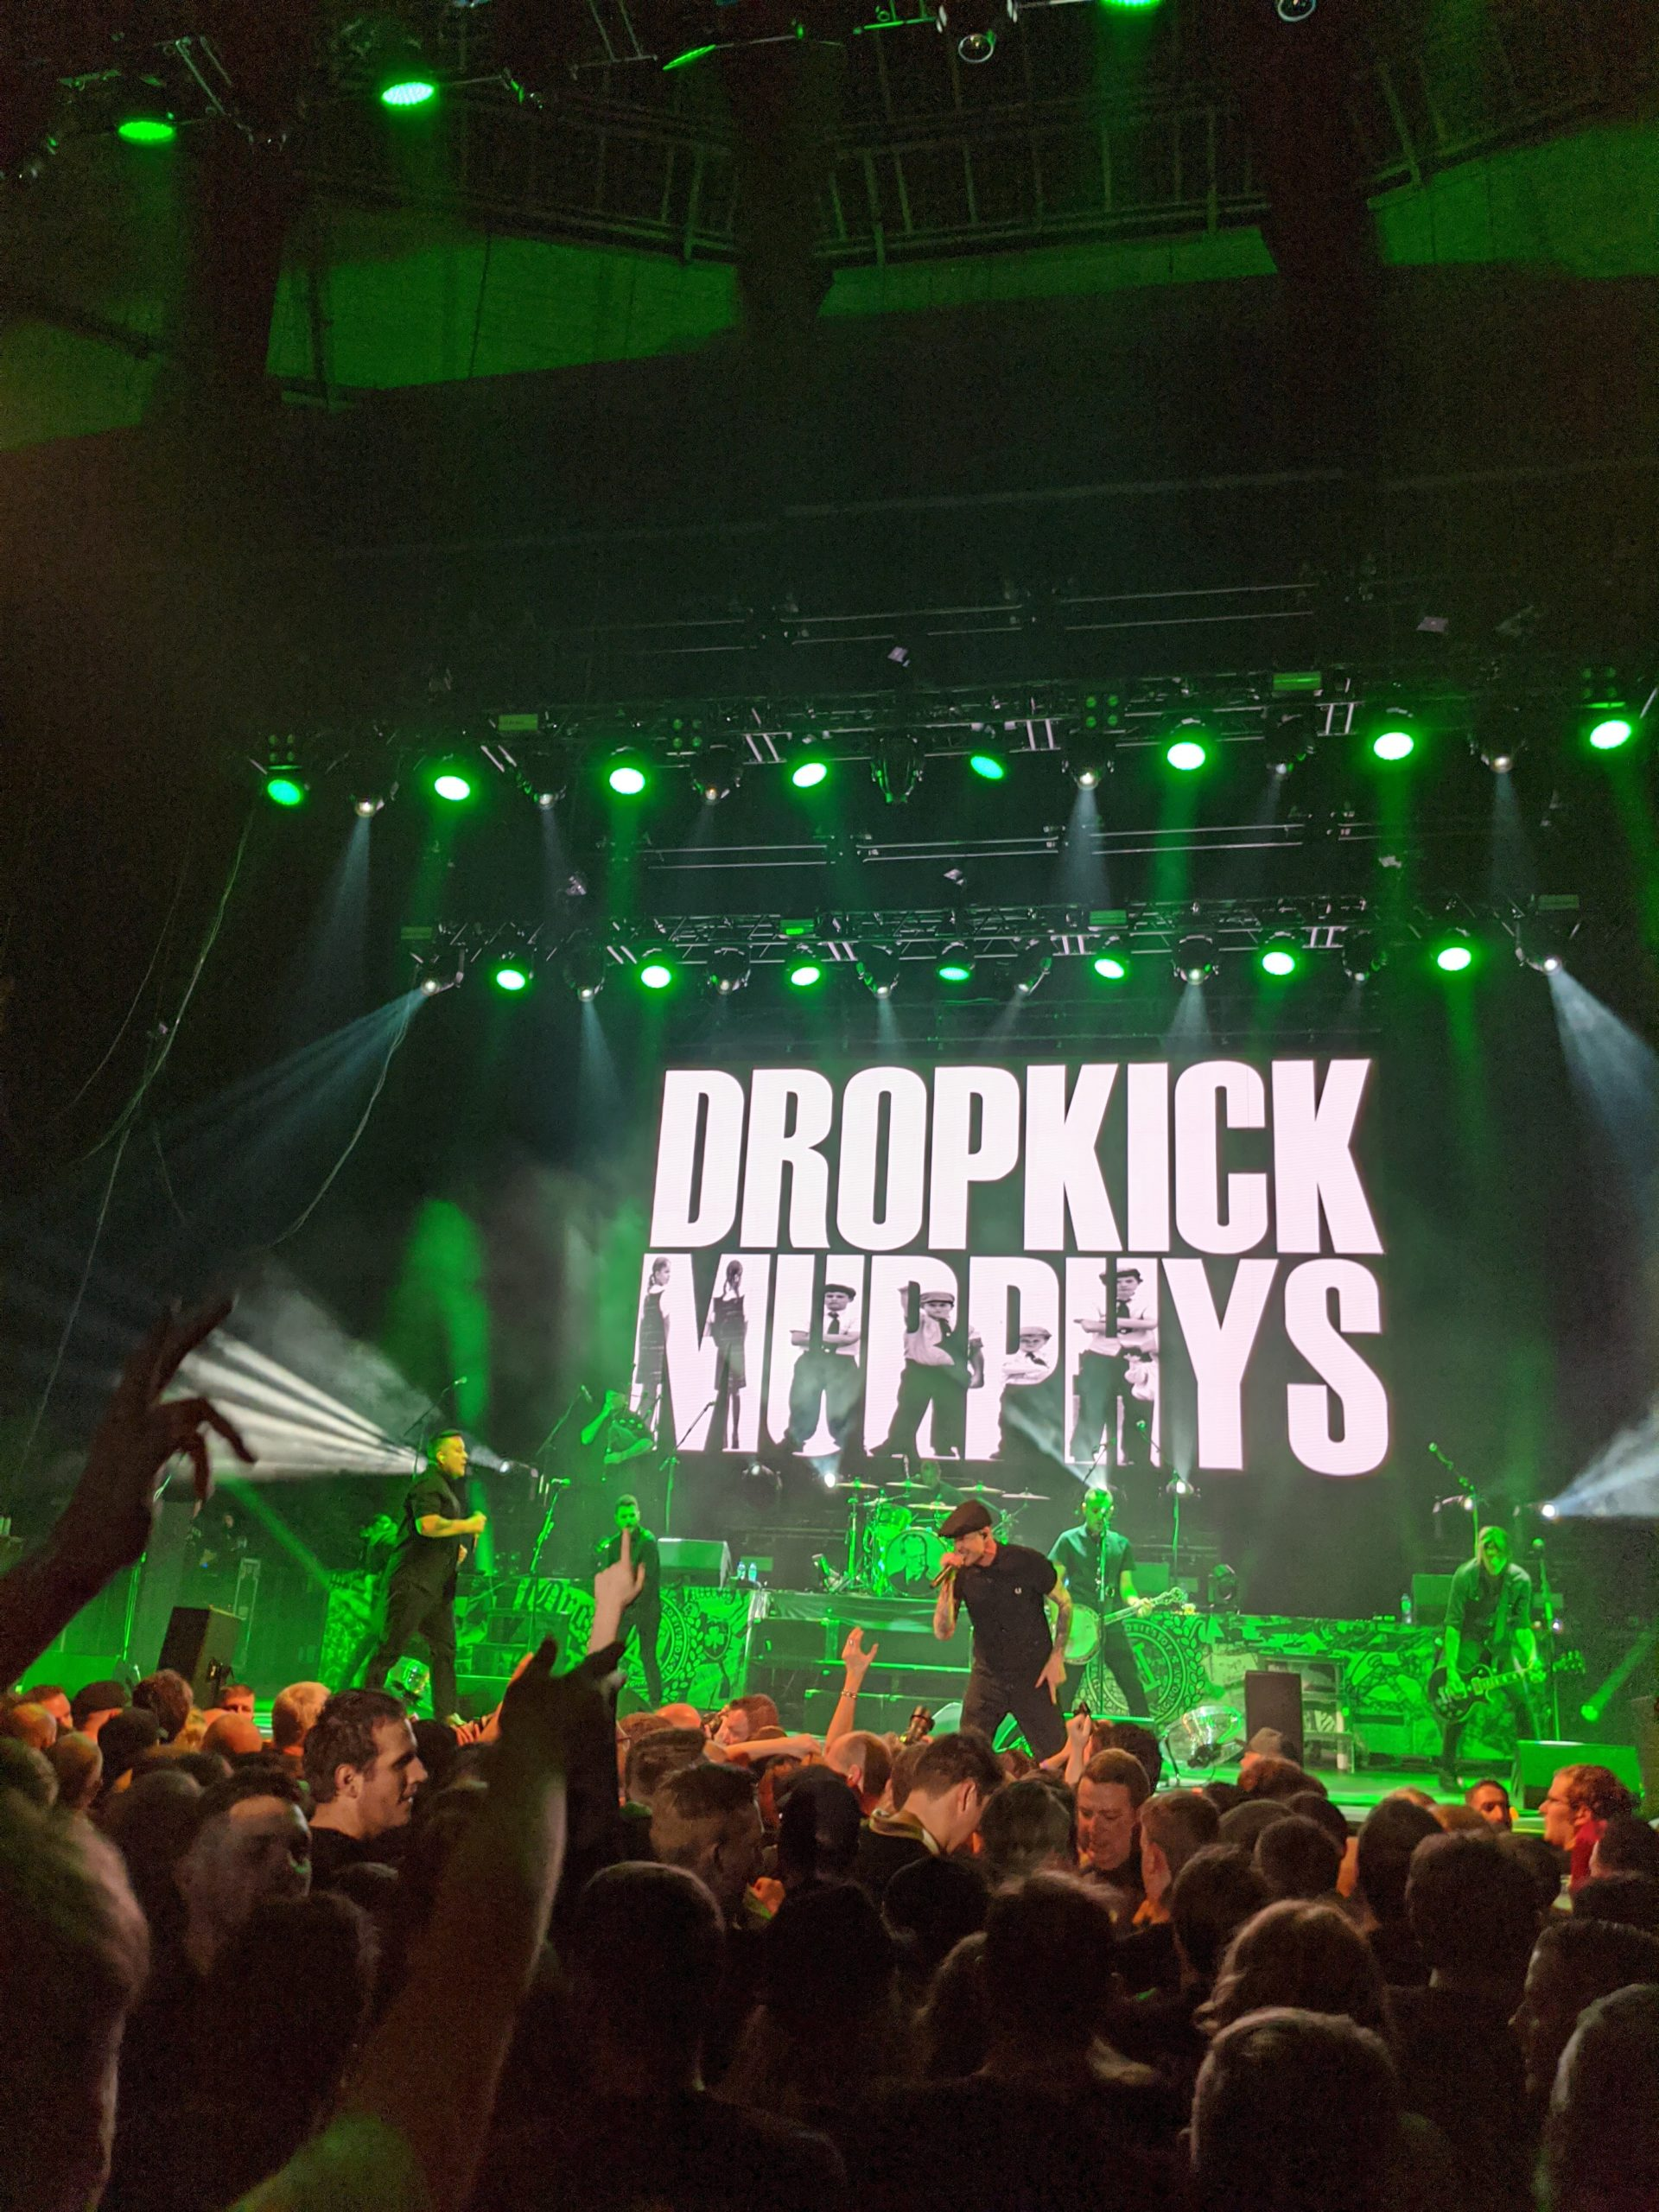 Dropkick Murphys & Frank Turner -  Party im Doppelpack in Dortmund